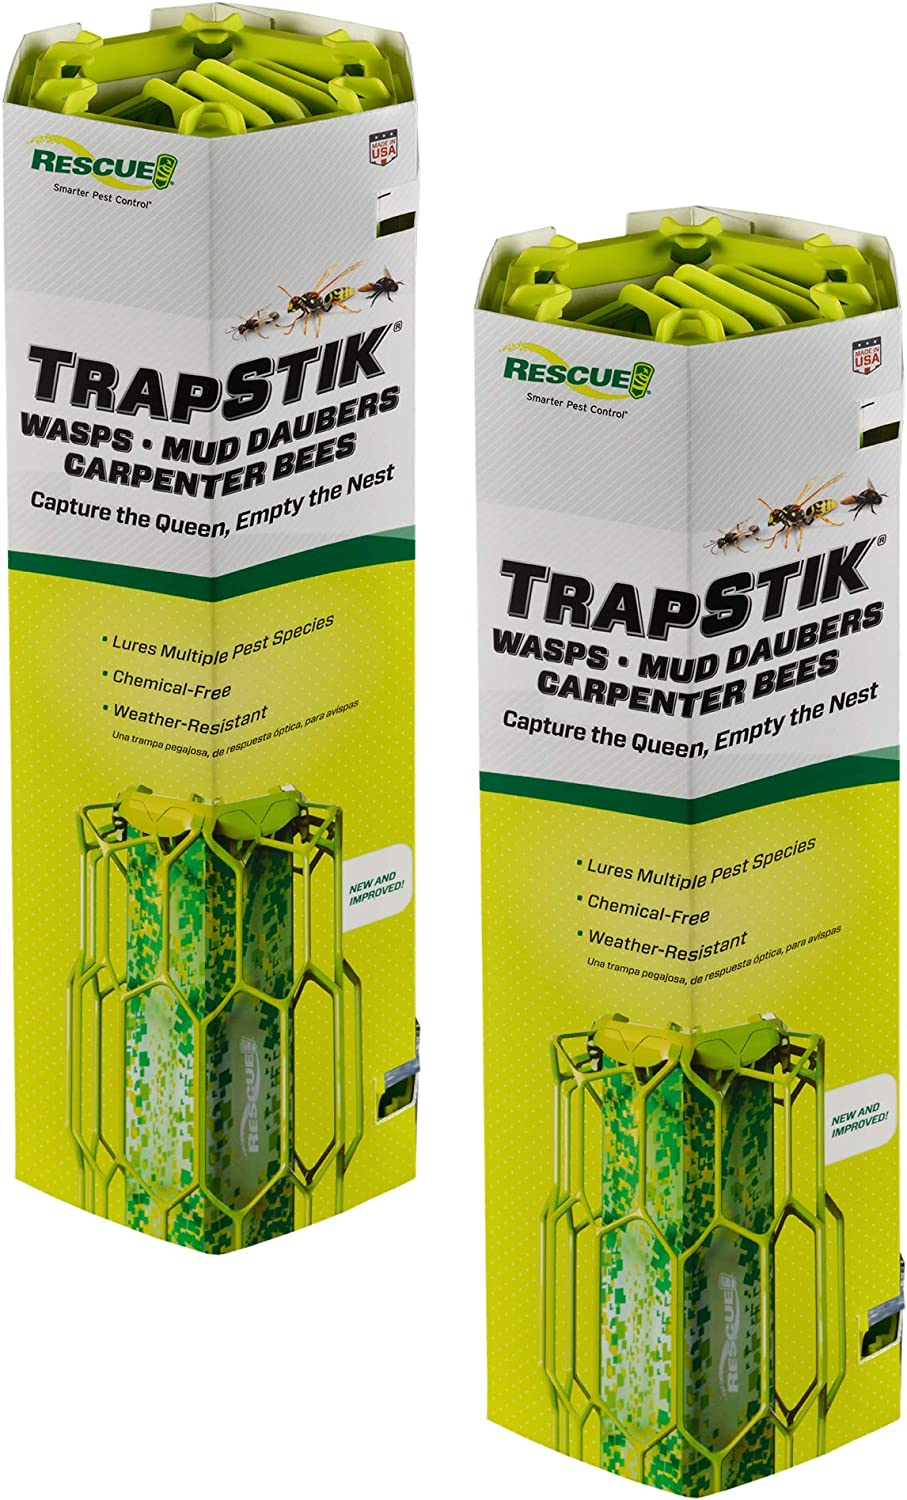 RESCUE Trapstik for Wasps with Bird Guard, 2 Pack